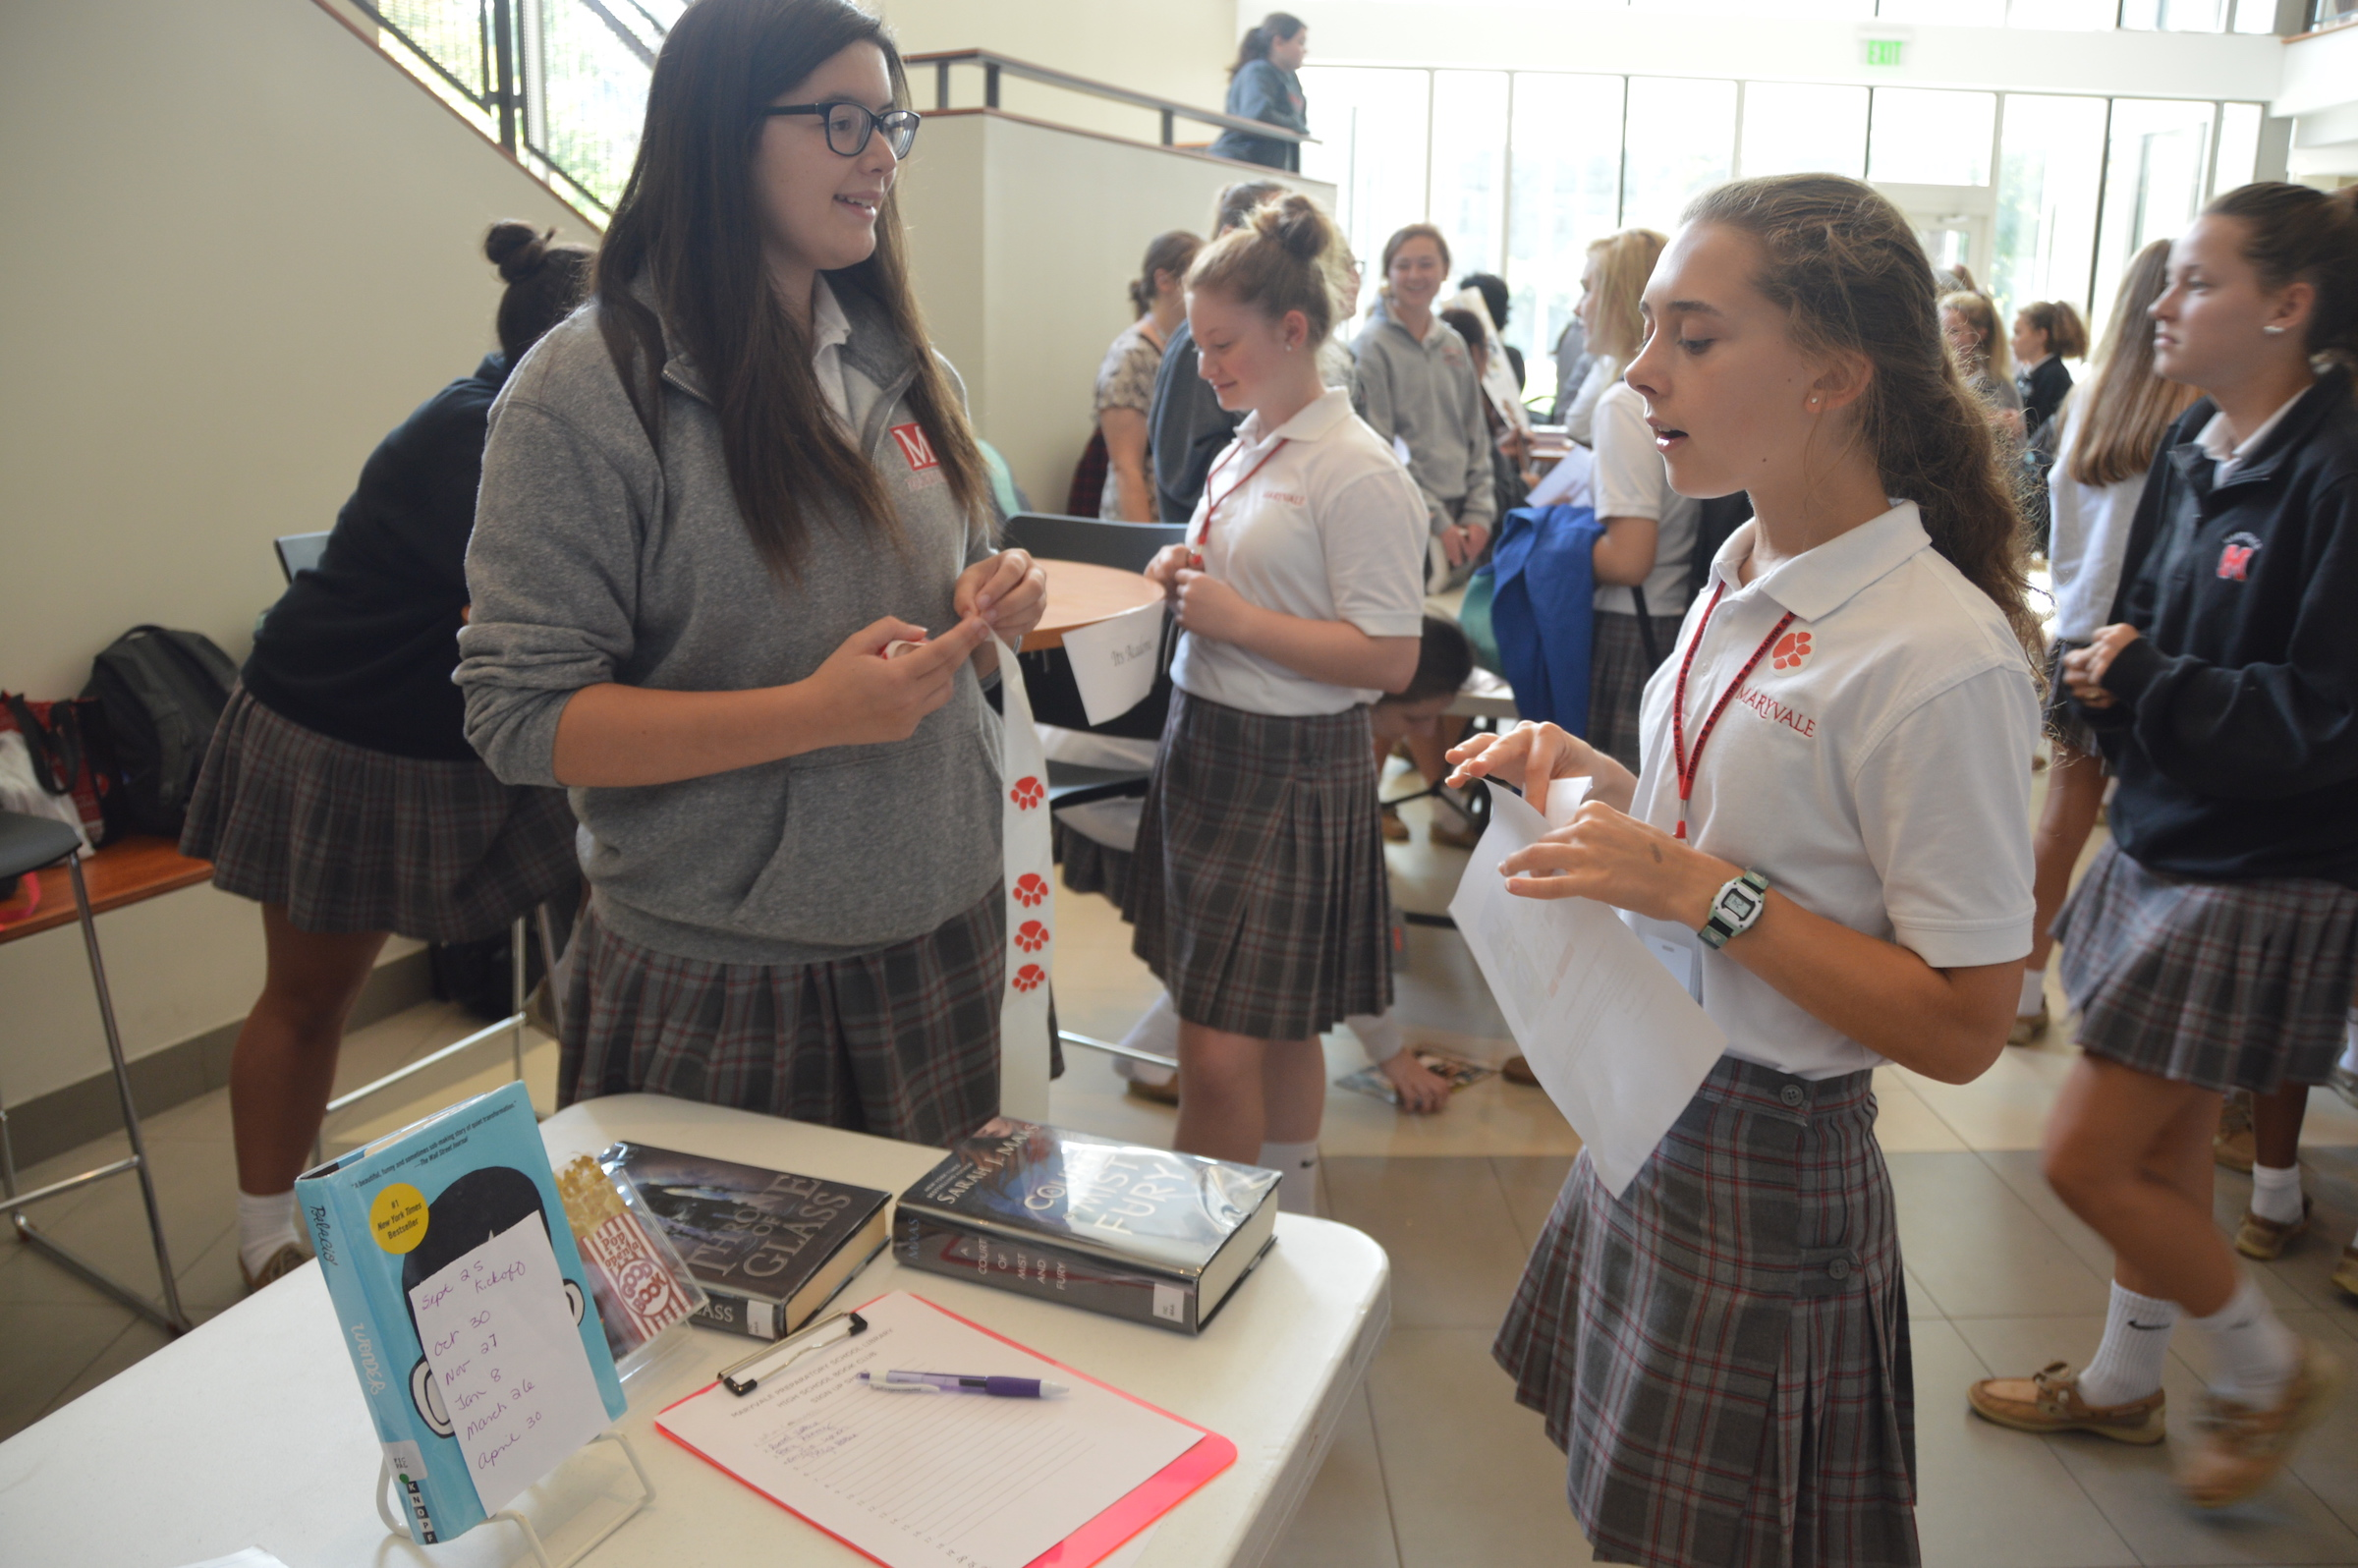 2018-2019 Upper School Co-Curricular Clubs at Maryvale